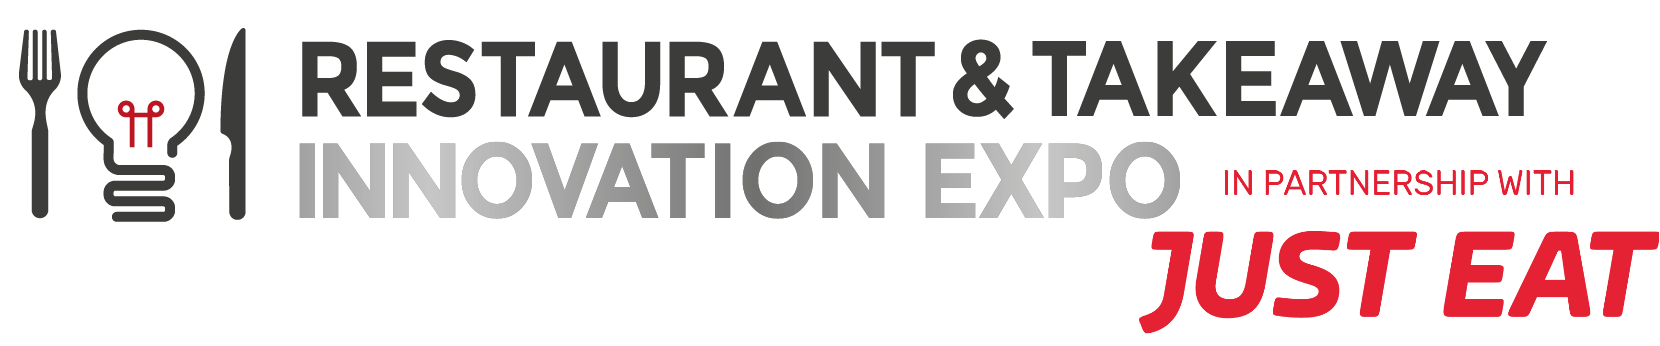 The Restaurant & Takeaway Innovation Expo